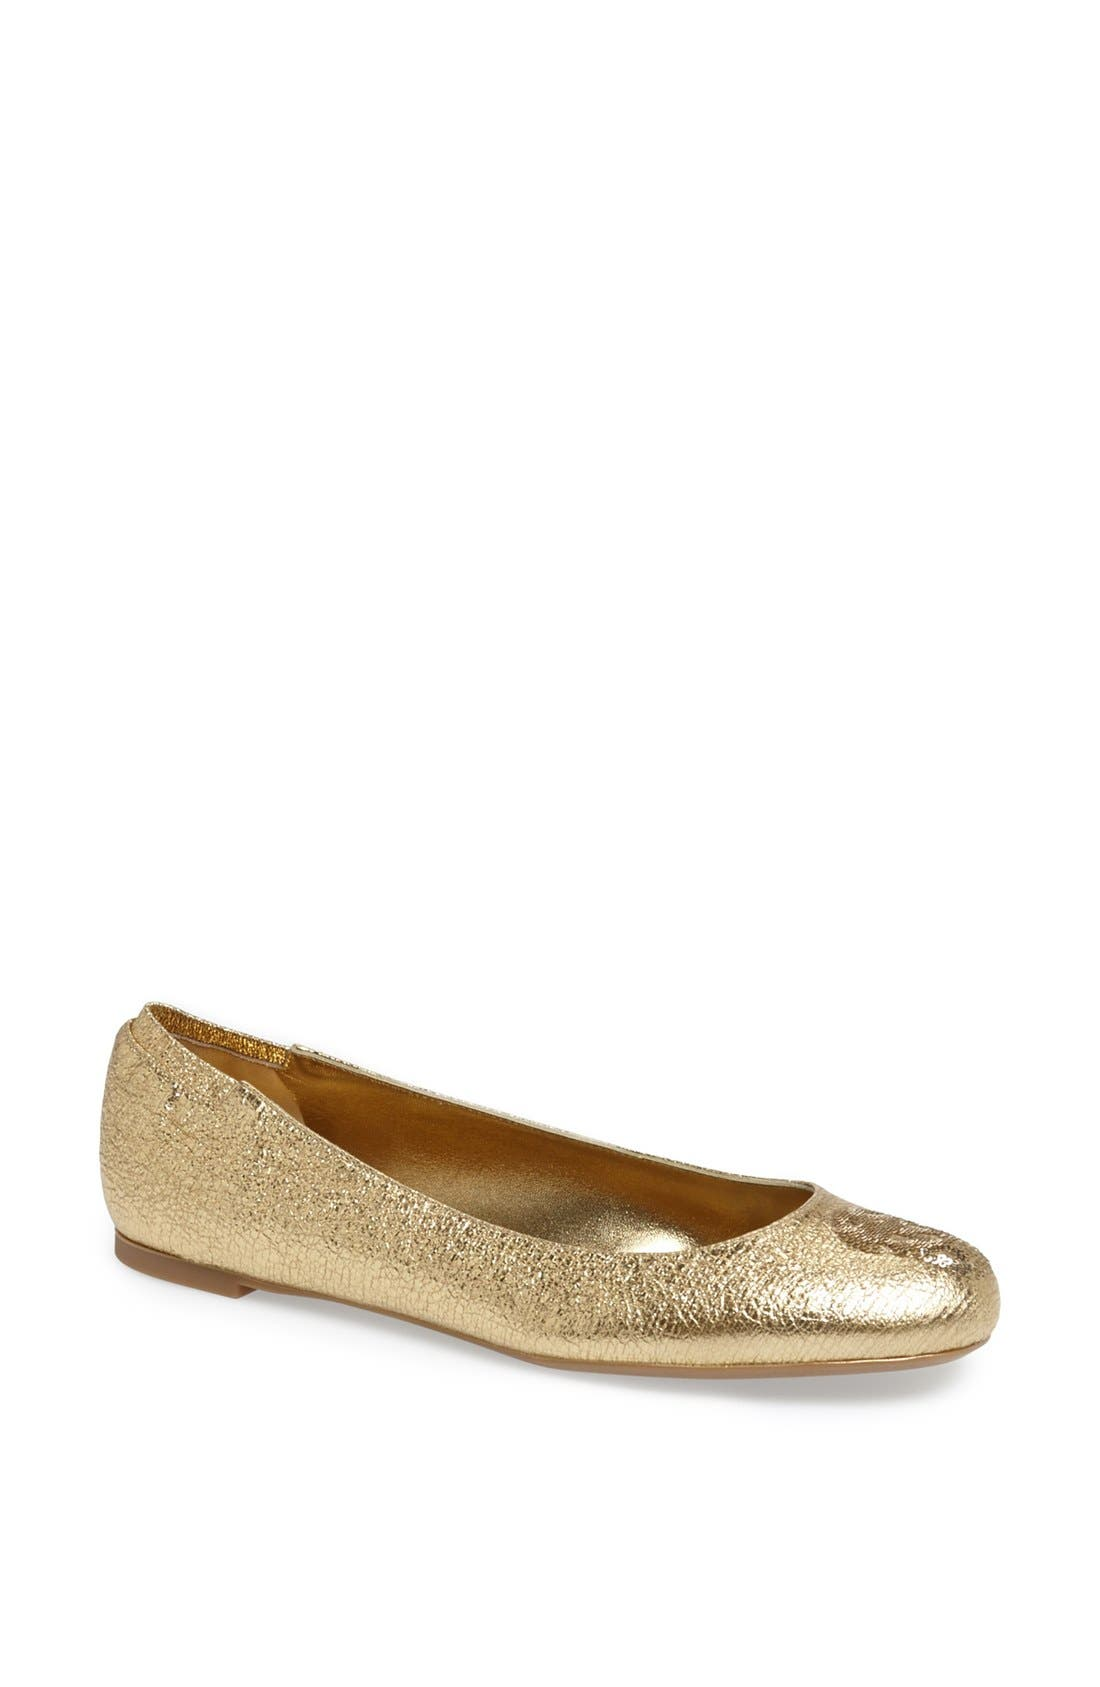 Alternate Image 1 Selected - Alexander McQueen 'Skull' Ballet Flat